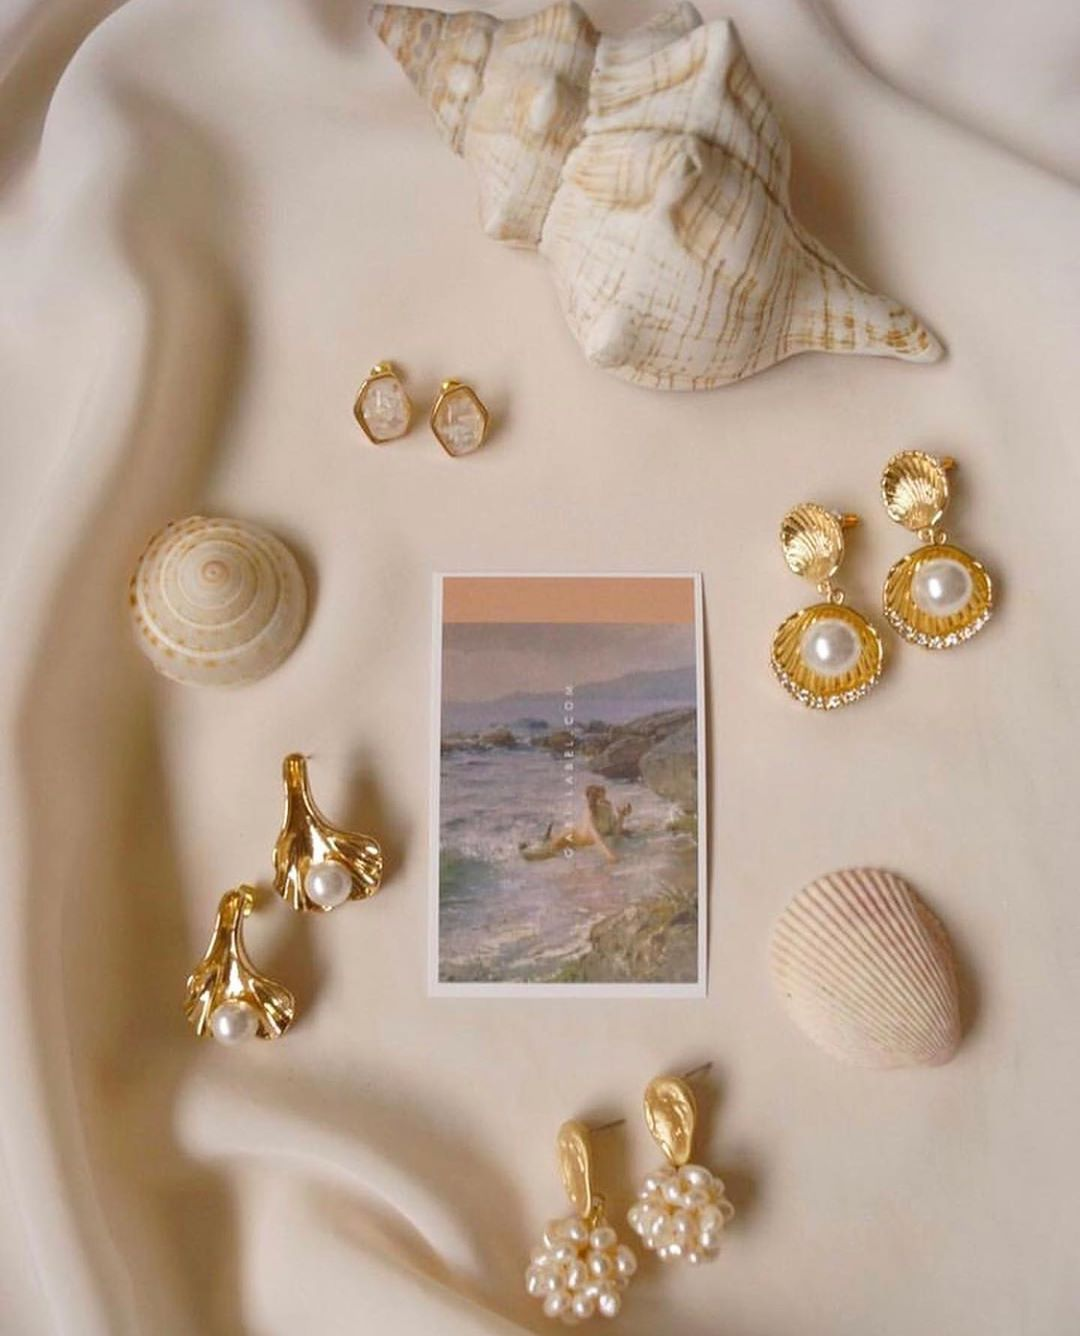 """𝔽𝕒𝕤𝕙𝕚𝕠𝕟 𝕡𝕠𝕤𝕥𝕤 on Instagram """"Sea treasures"""" (With images"""